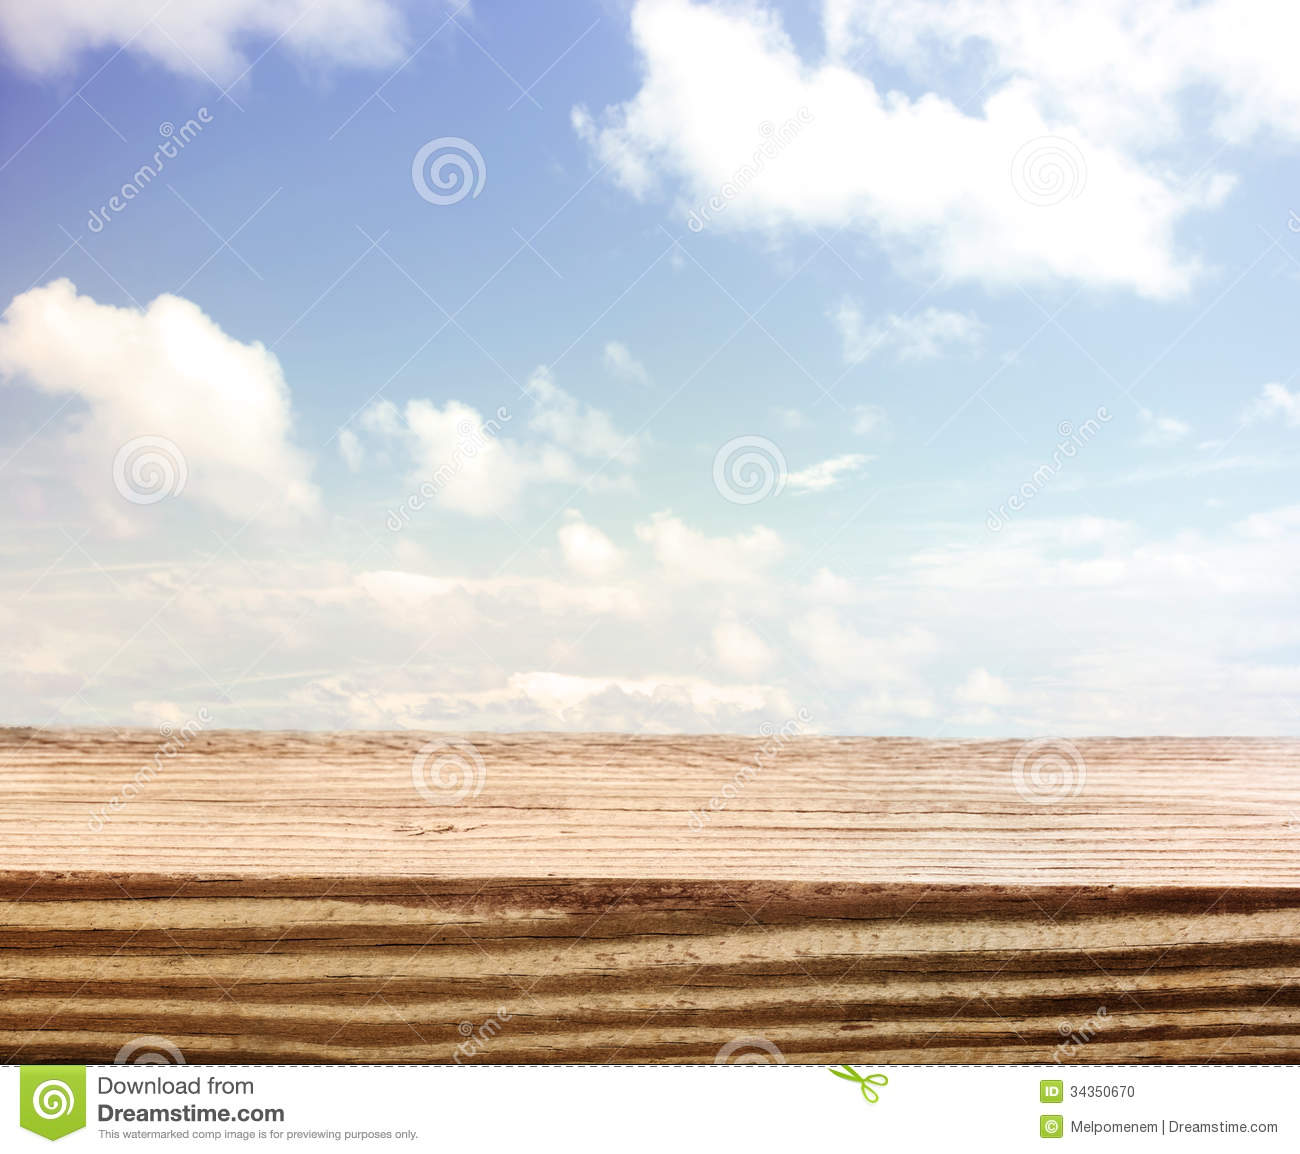 Blue sky with a wooden board foreground stock photo